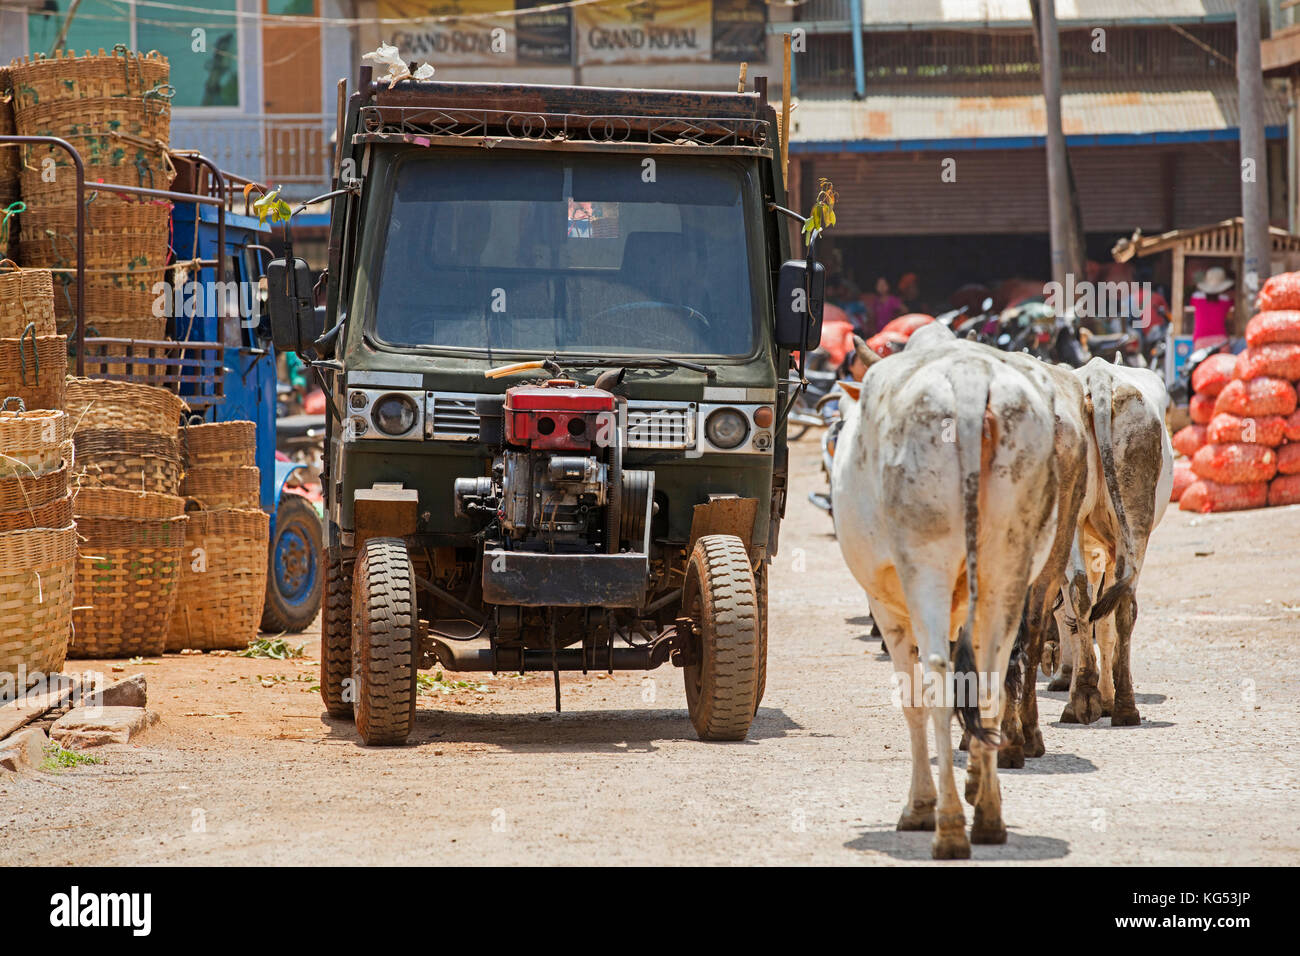 Chinese tractor and cows in the town Aungban, Kalaw Township, Taunggyi District, Shan State, Myanmar / Burma Stock Photo